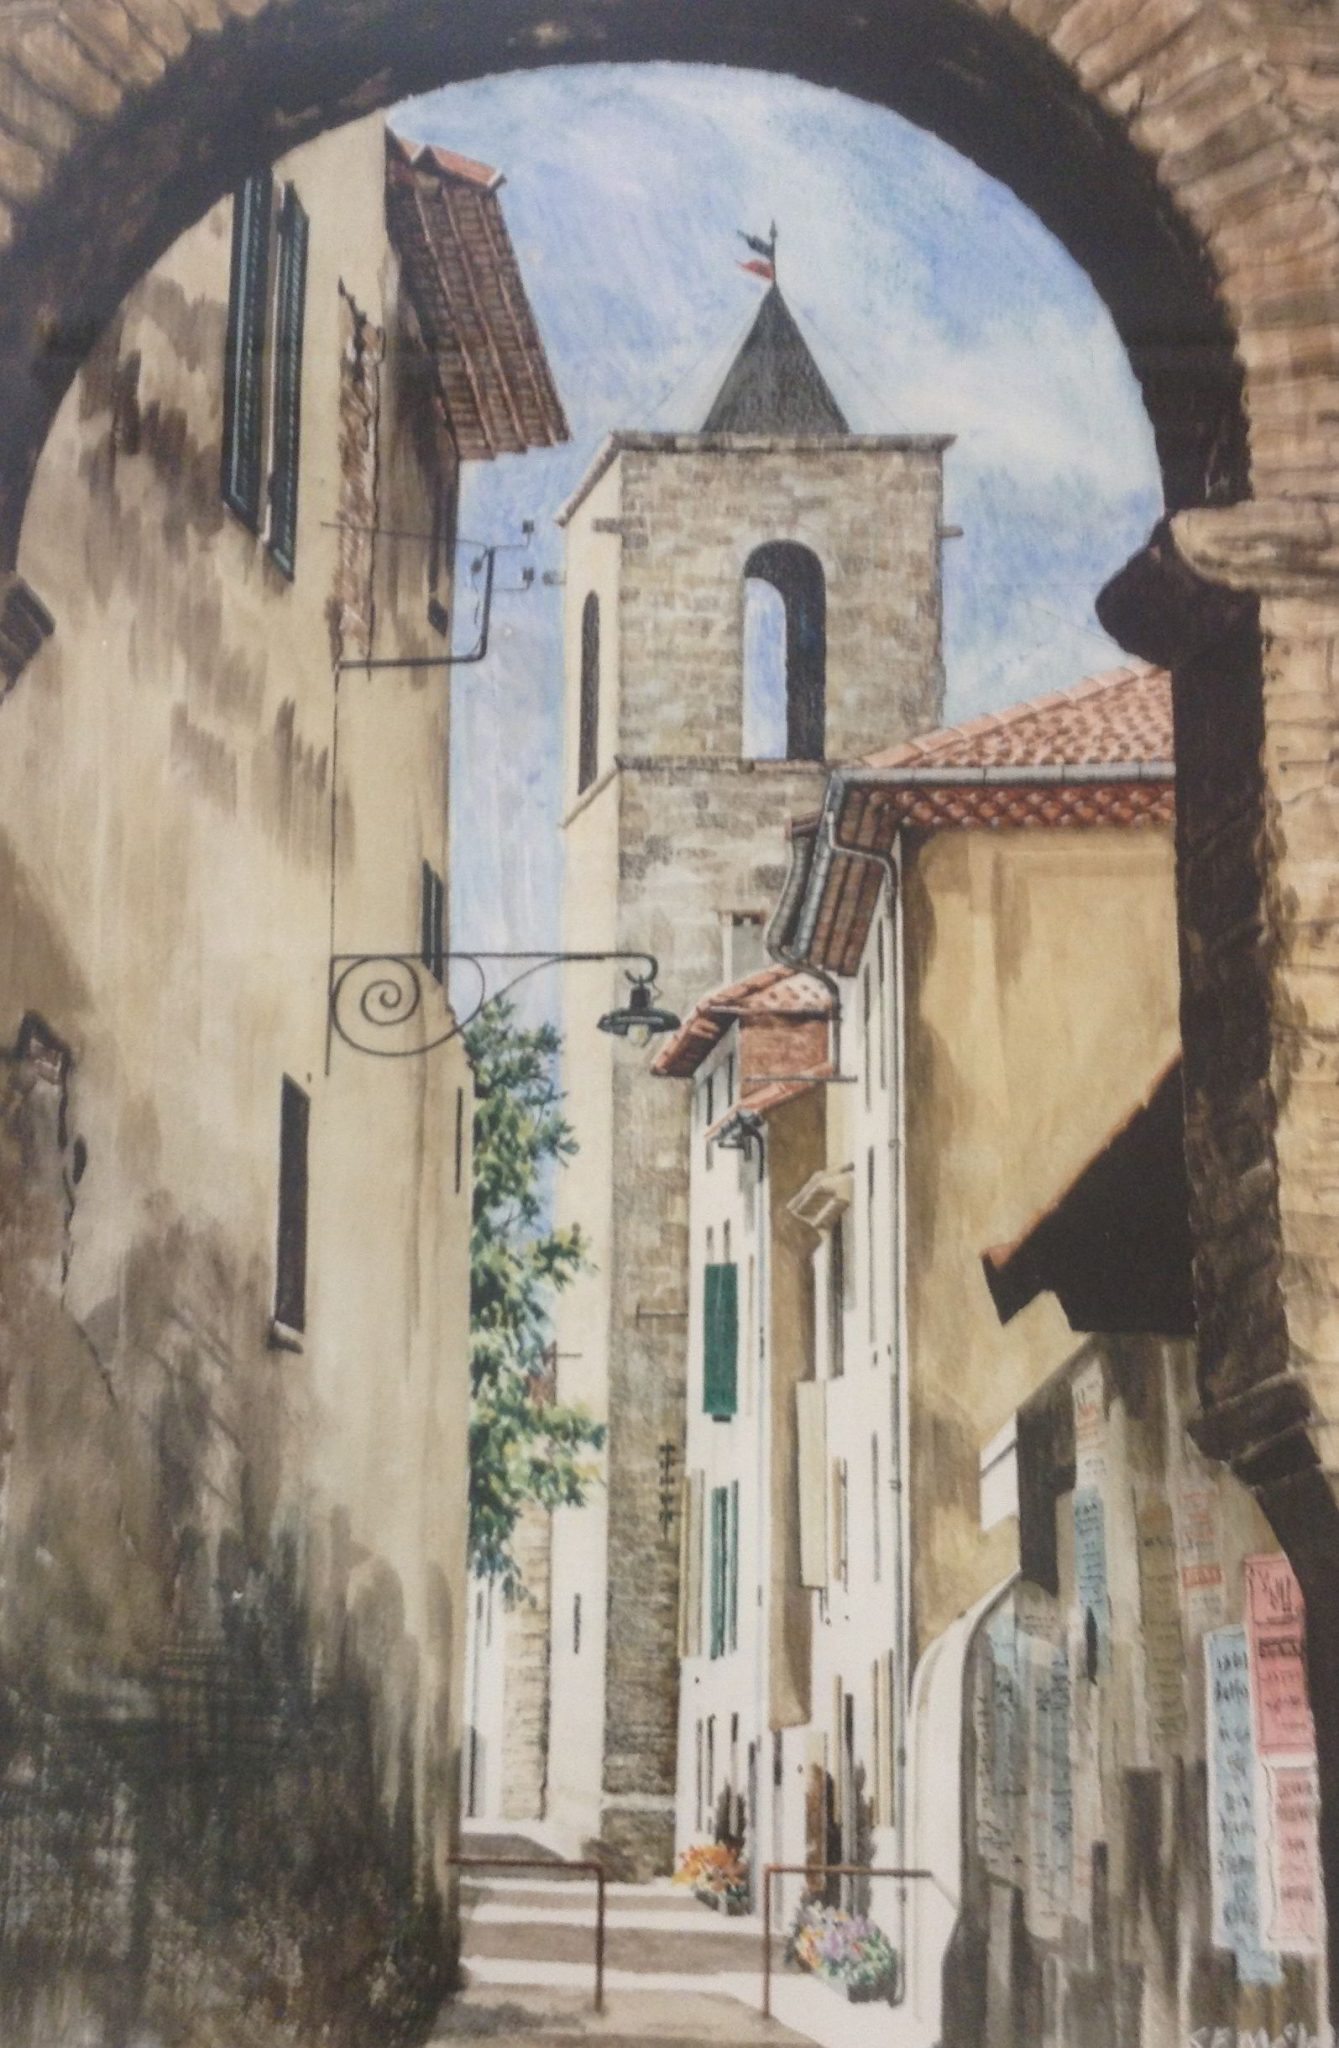 A watercolour painting, titled Orange, of a Provencal street leading to an old tower